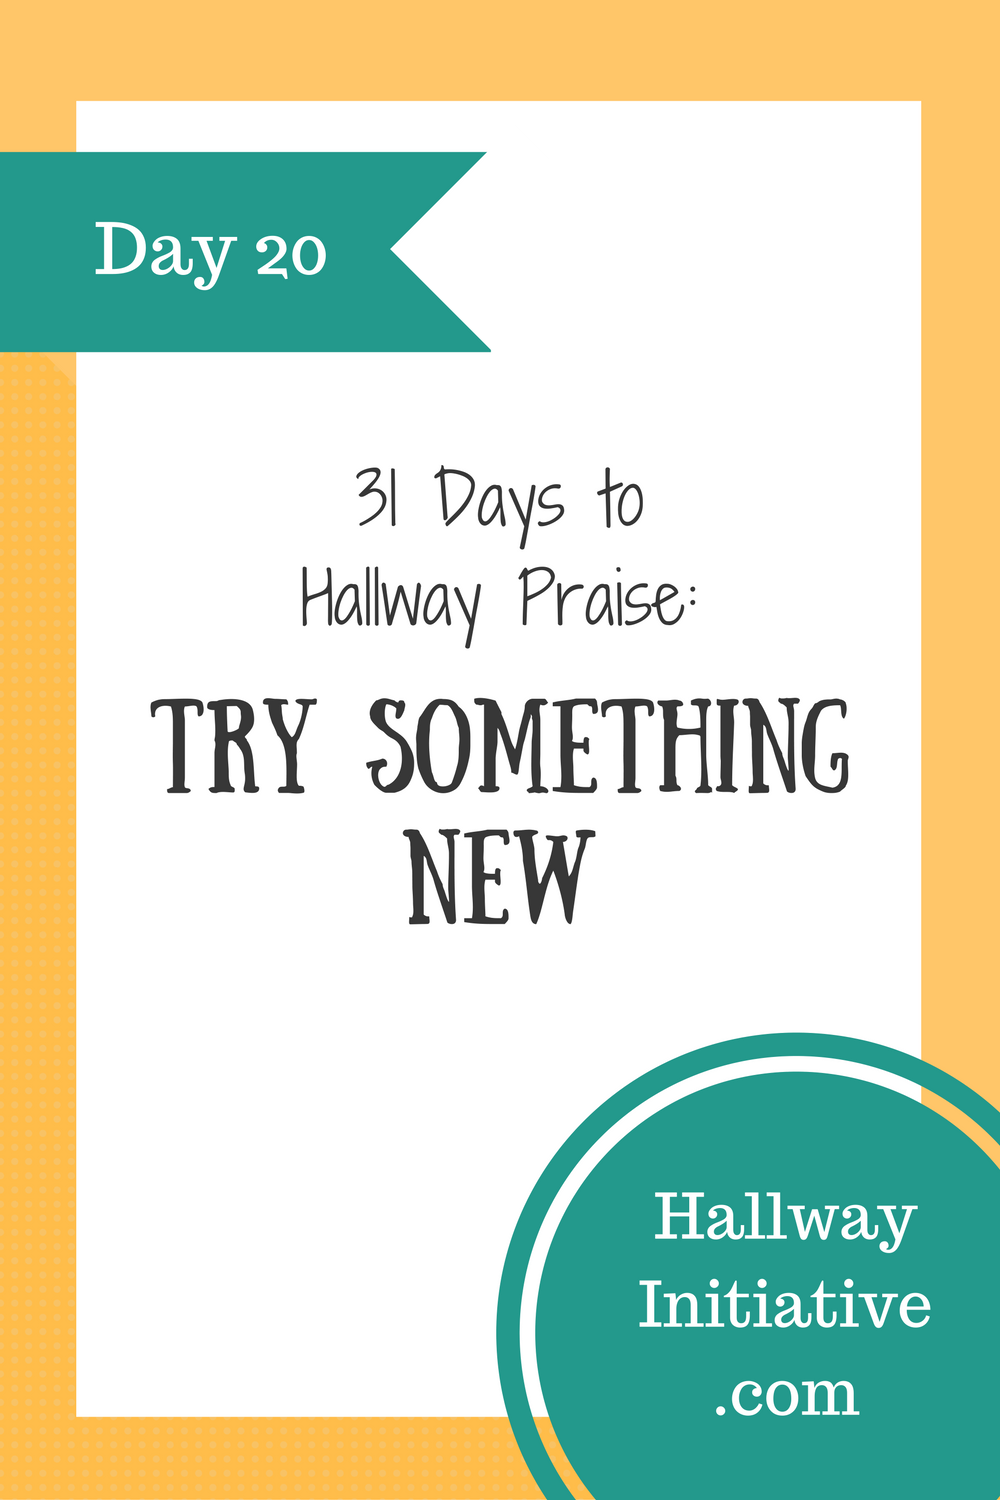 Day 20: try something new